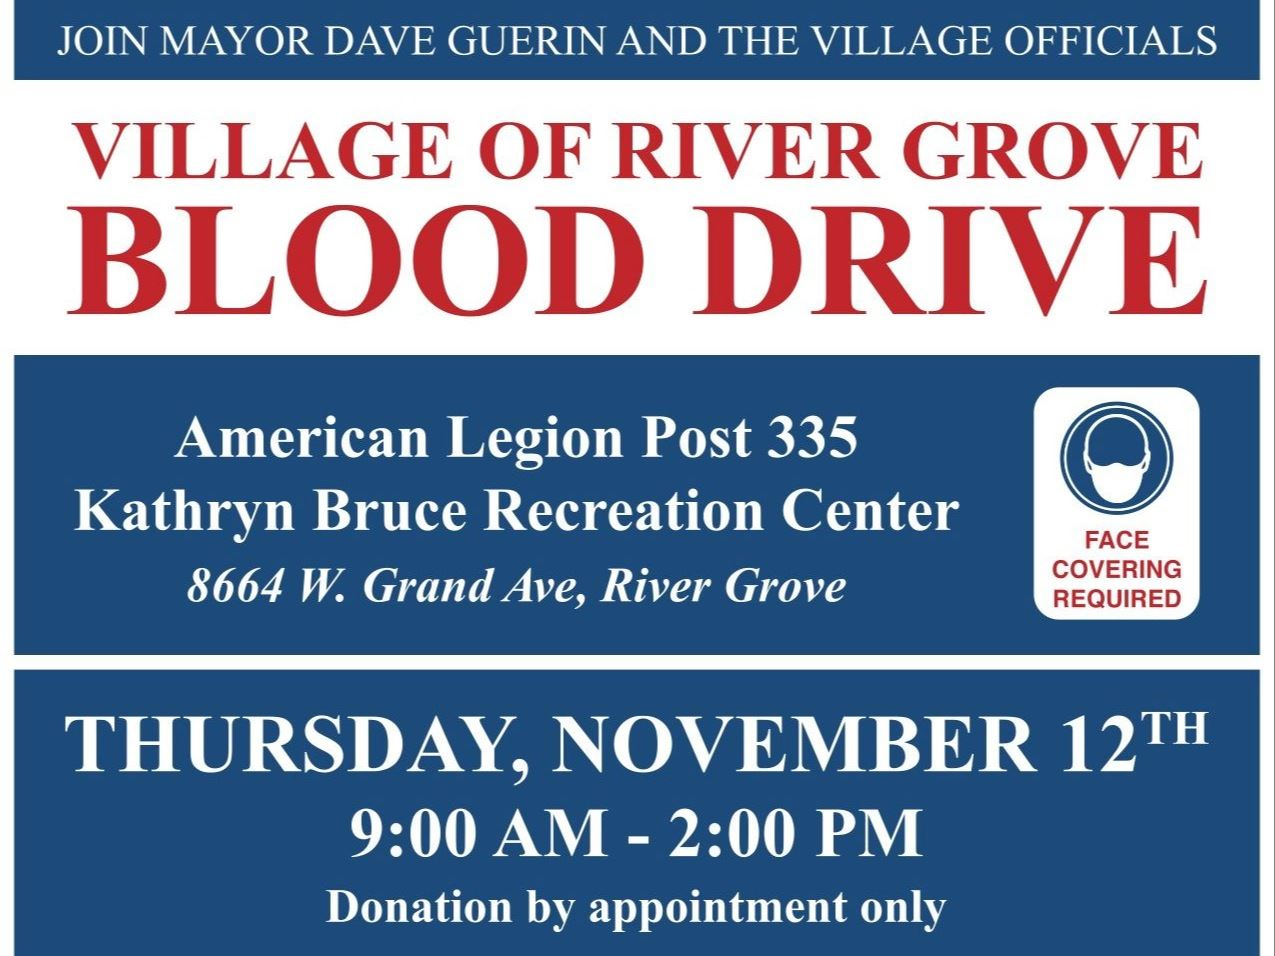 Flyer promoting a November 12th blood drive